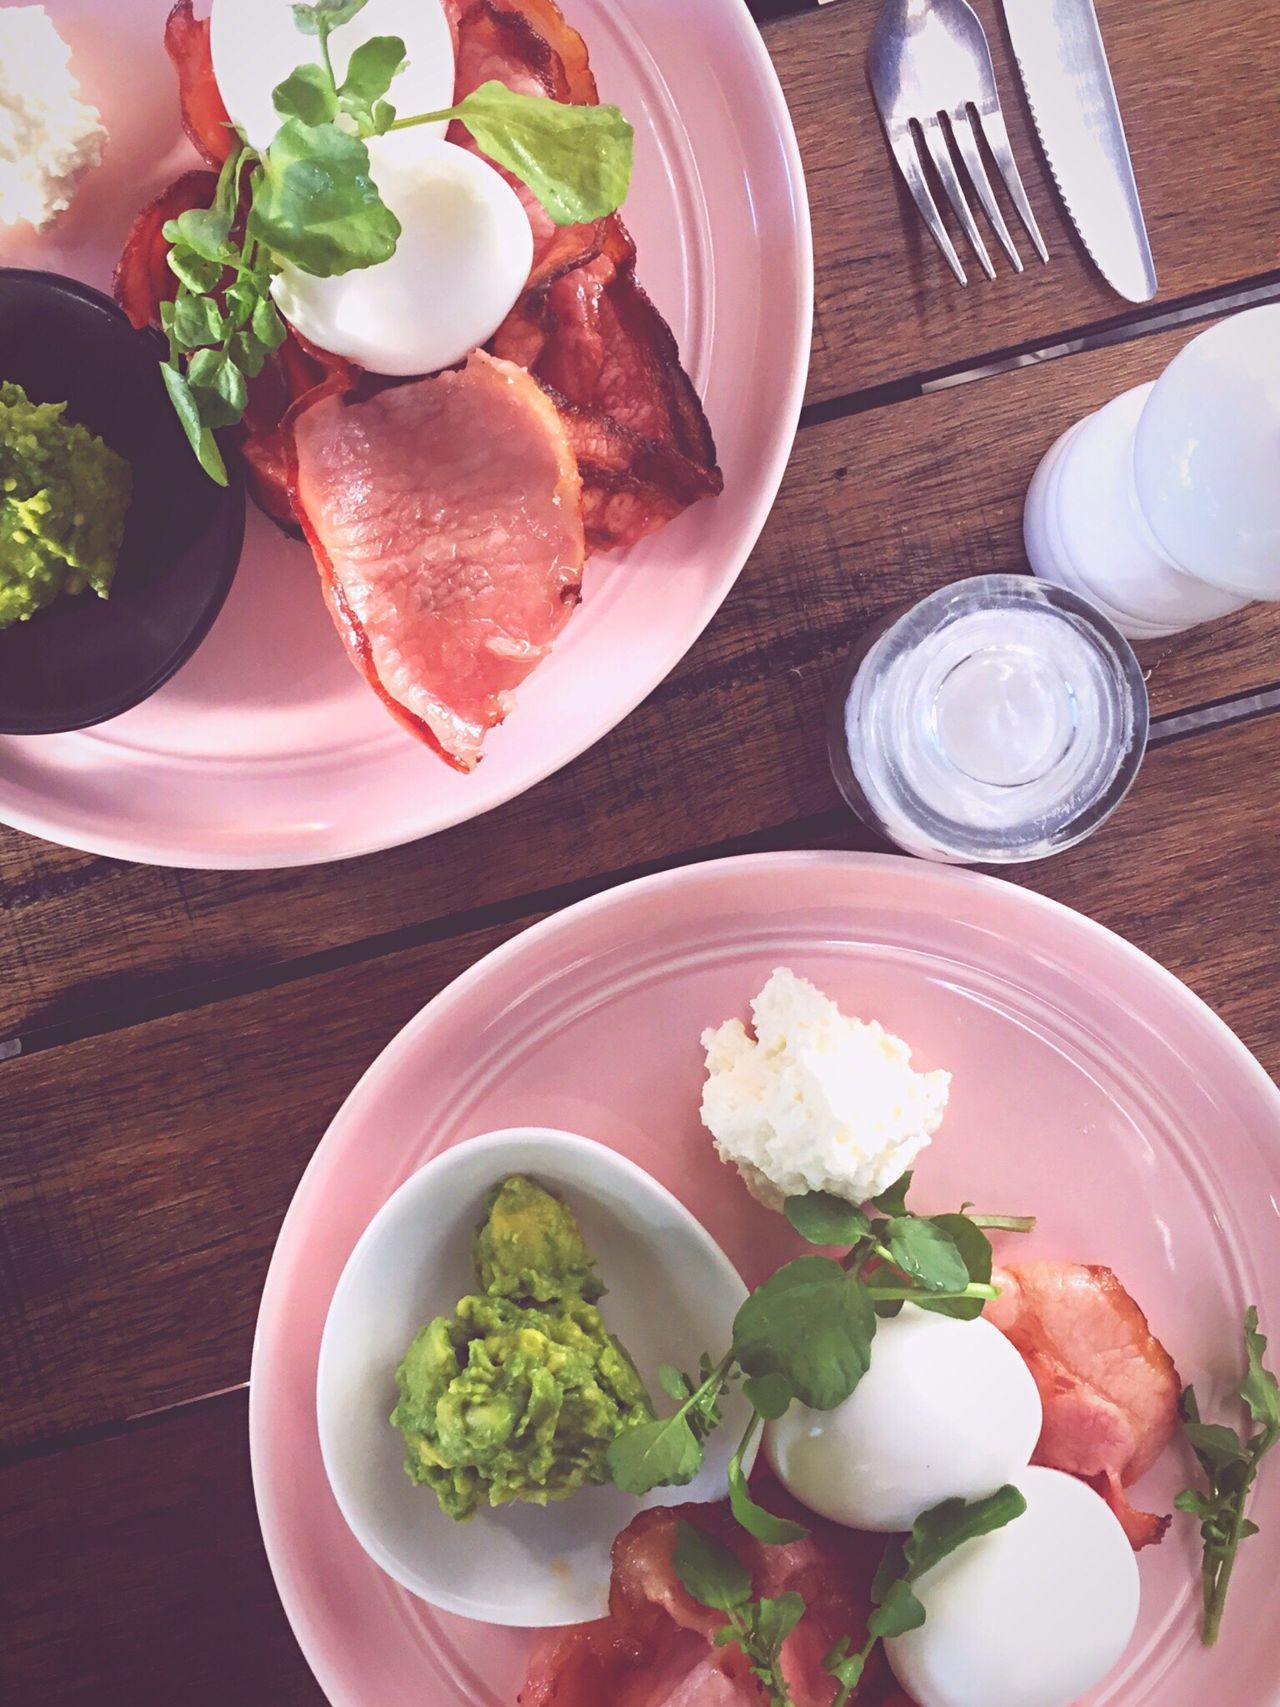 Millennial Pink healthy breakfast Plate High Angle View Freshness Table Ready-to-eat Egg Bacon Explosion Breakfast Healthy Eating Pink Cafe Culture